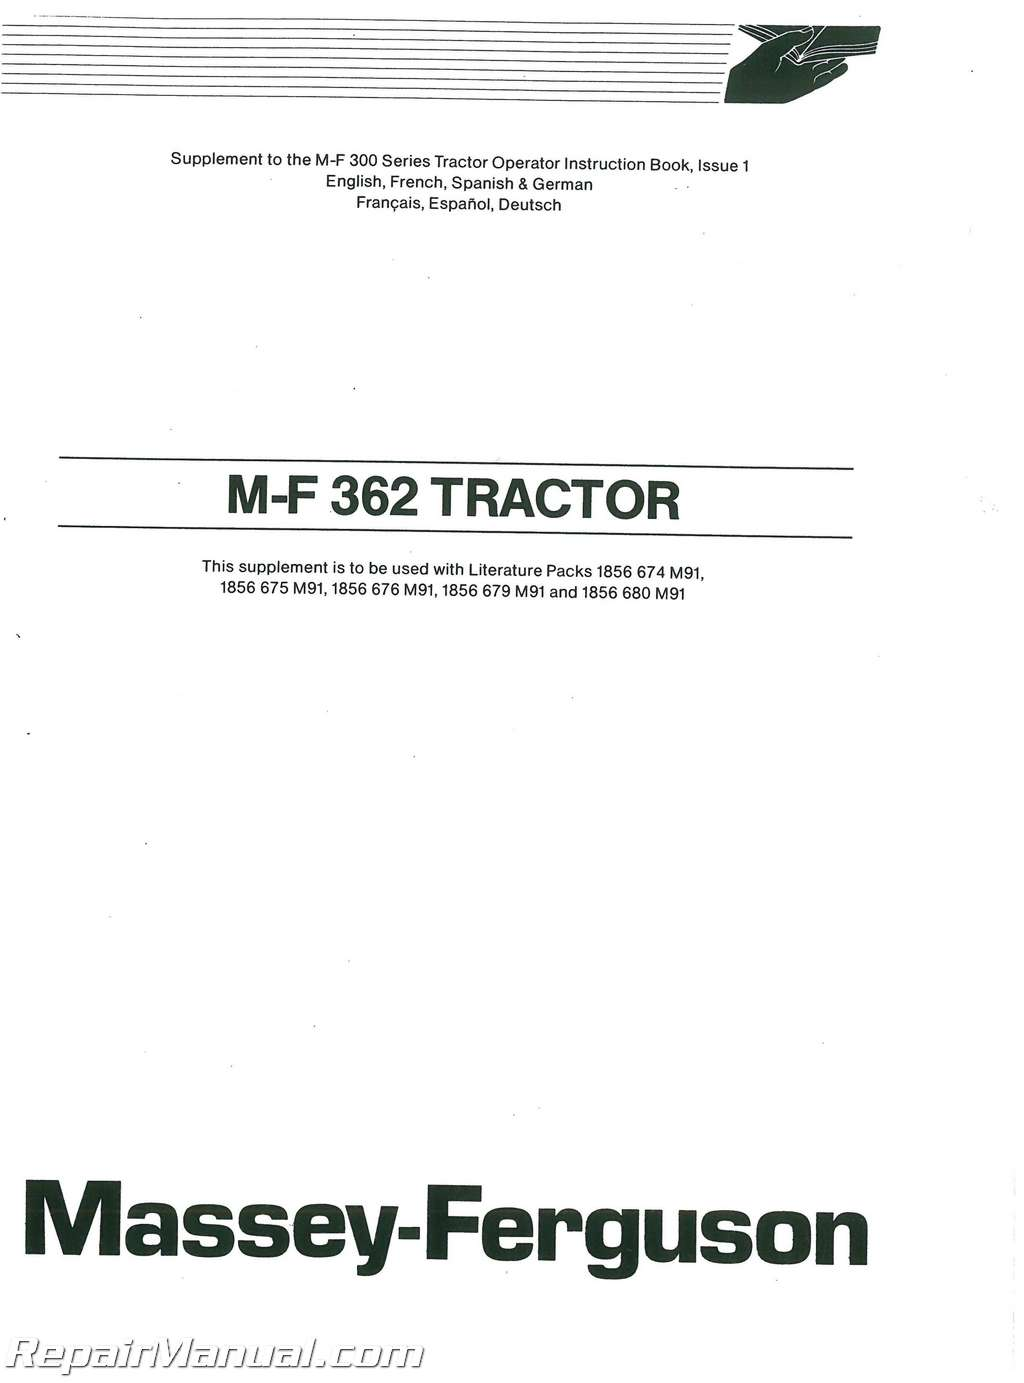 Massey Ferguson 699 Manual Kenworth T800 Wiring Schematic Diagrams Electrical Darren Array Mf350 Mf399 Dsl Tractor Operators Rh Repairmanual